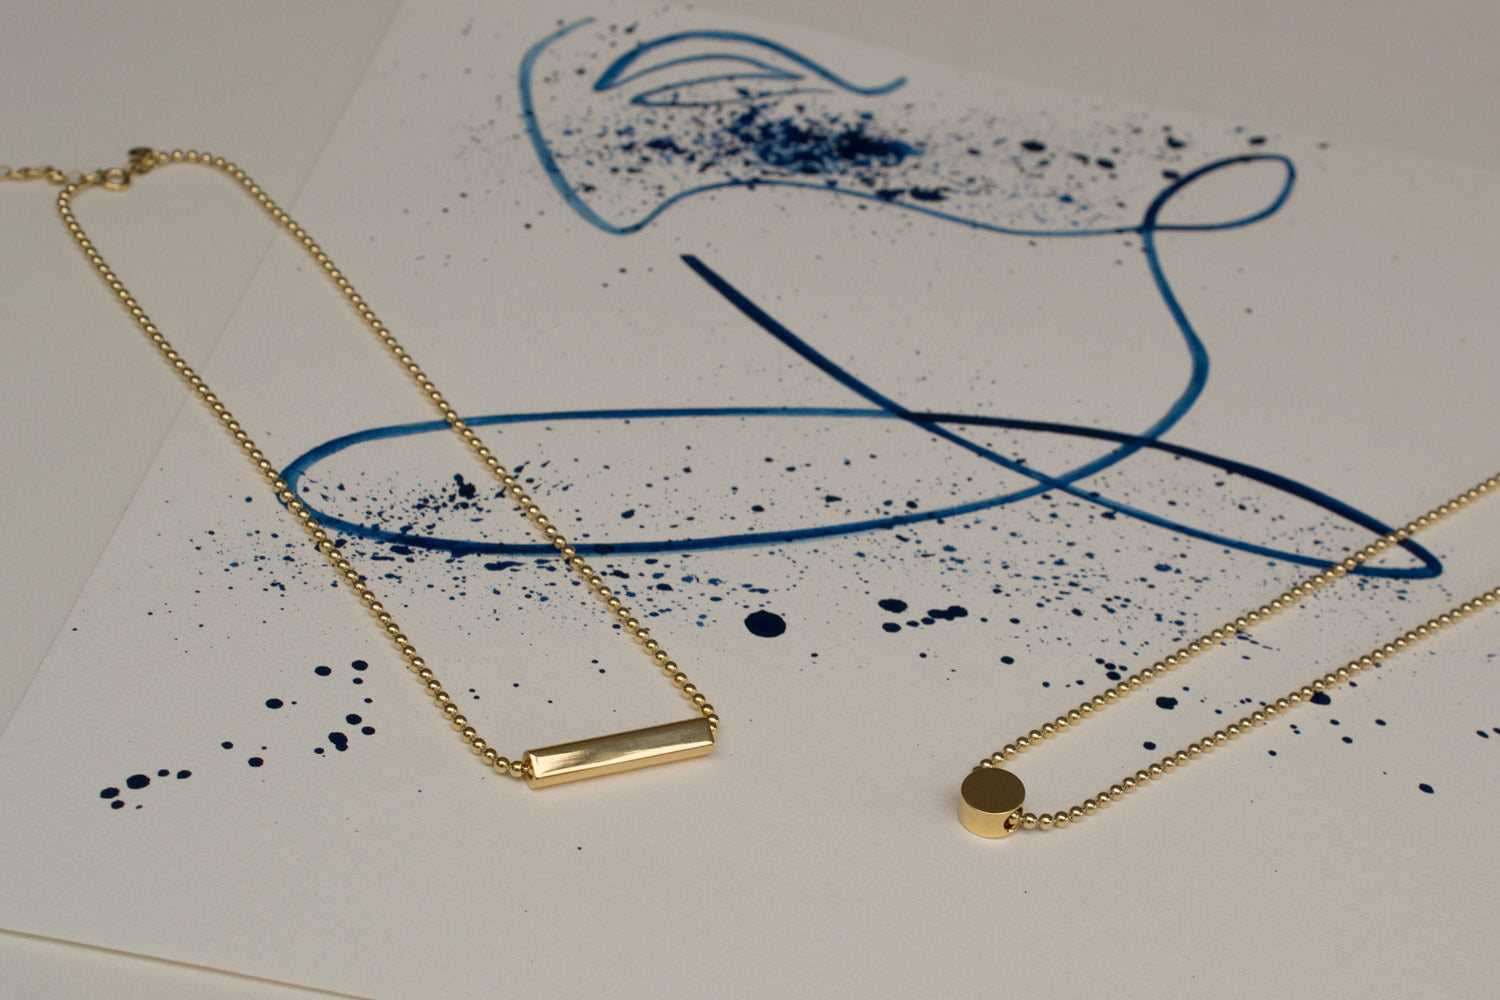 gold necklace for men | gold necklace for women | Alice Made This